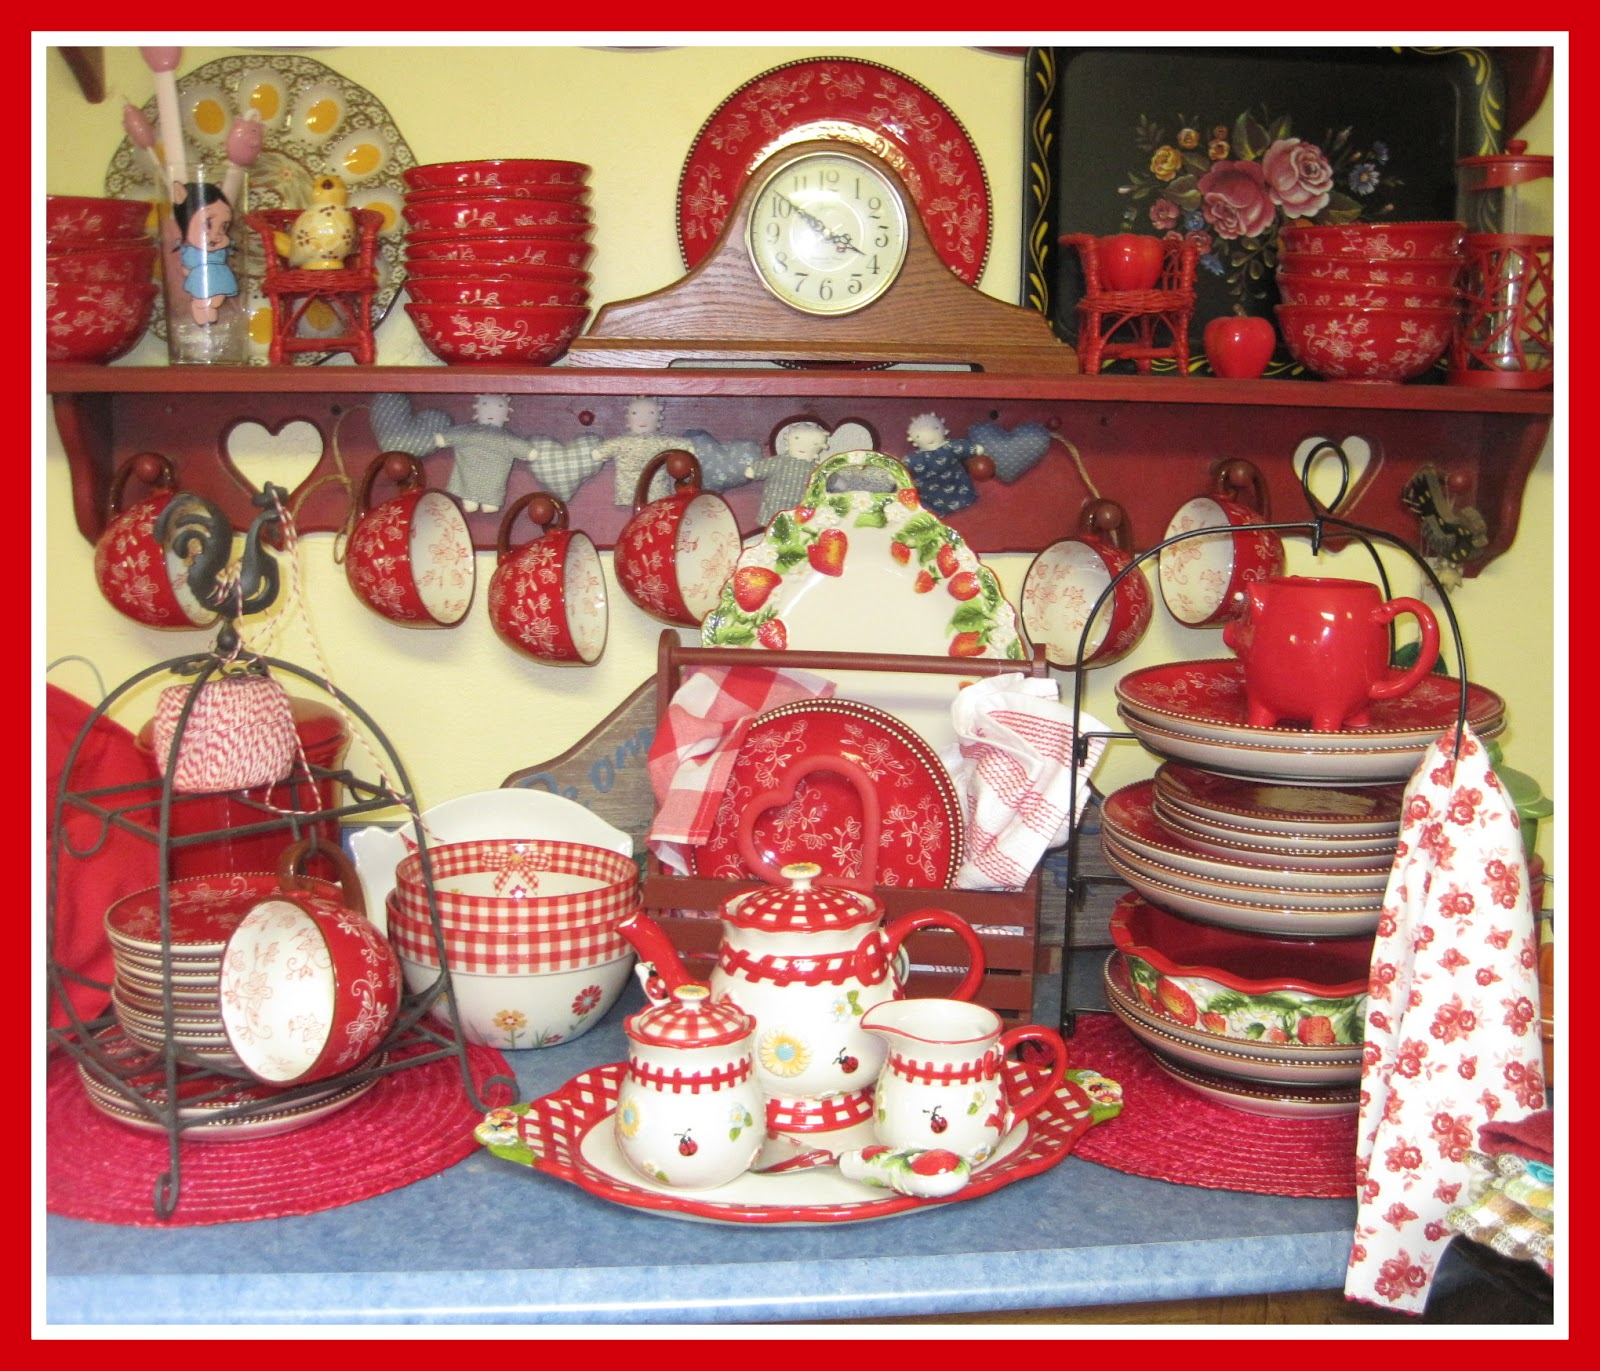 Pioneer Woman Kitchen Remodel Slice Of Pie Cookbooks Entertaining Strawberry Ready